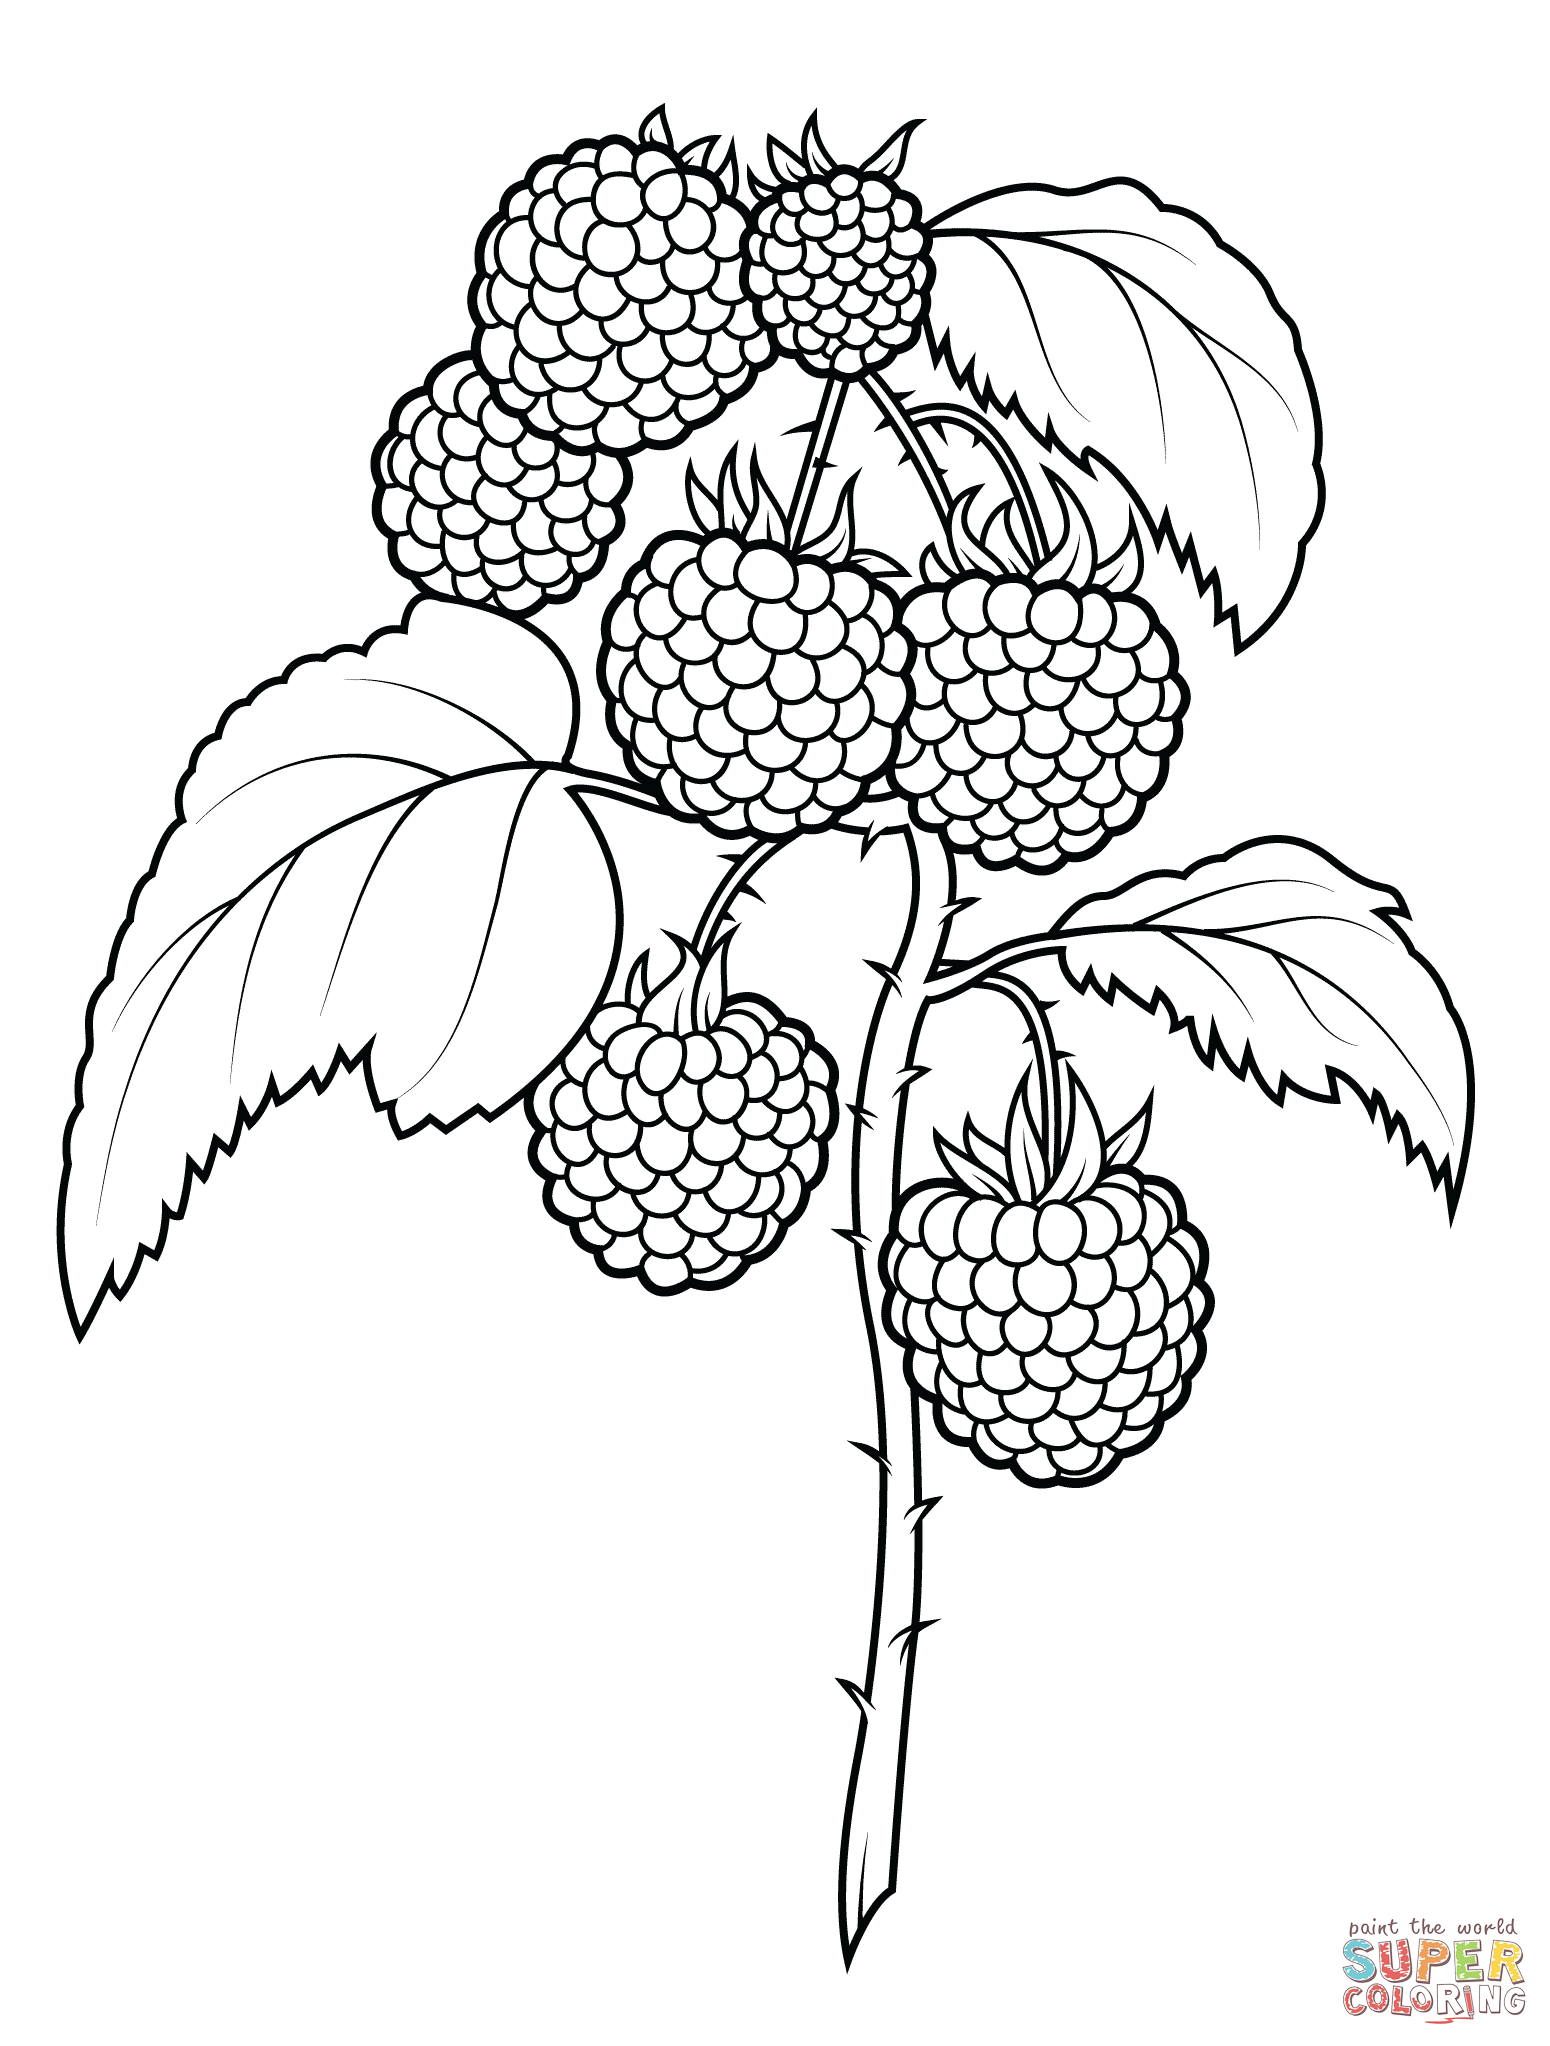 Raspberry coloring #7, Download drawings